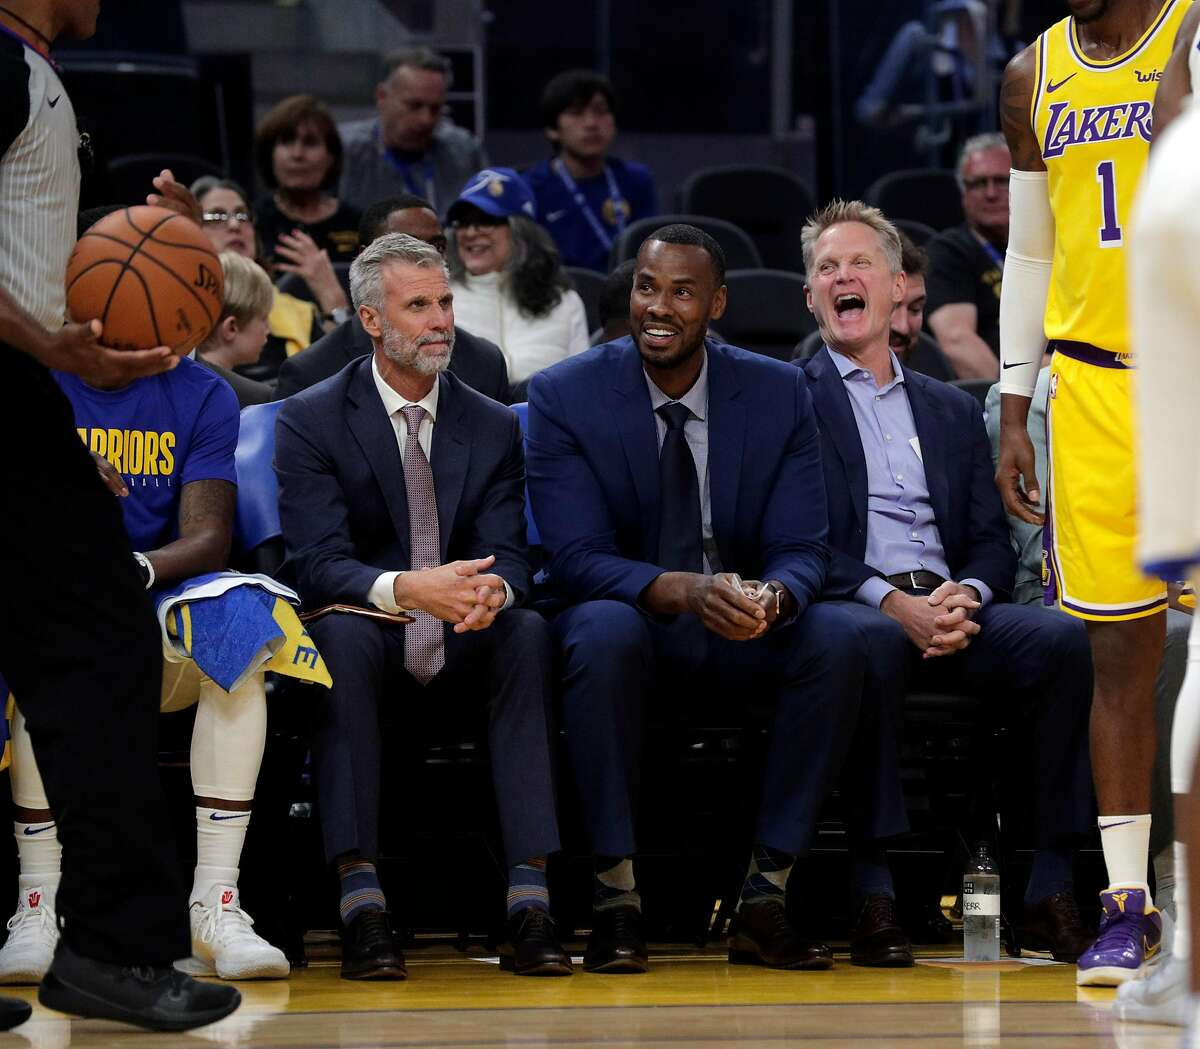 Warriors head coach Steve Kerr laughs with the referee in the second half as the Golden State Warriors played the Los Angeles Lakers in a pre-season game at Chase Center in San Francisco, Calif., on Saturday, October 5, 2019.